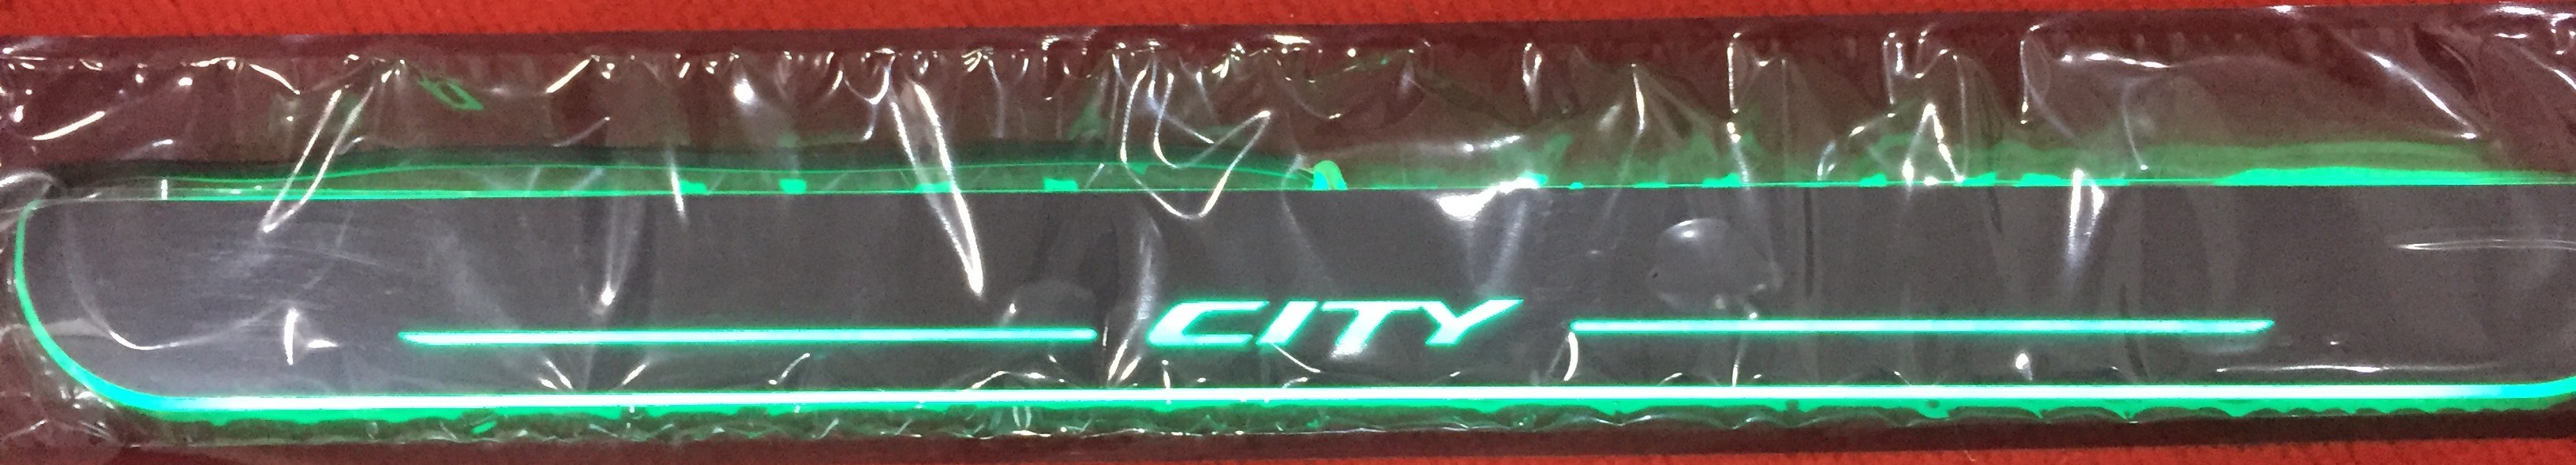 LED sill scuff plate- City